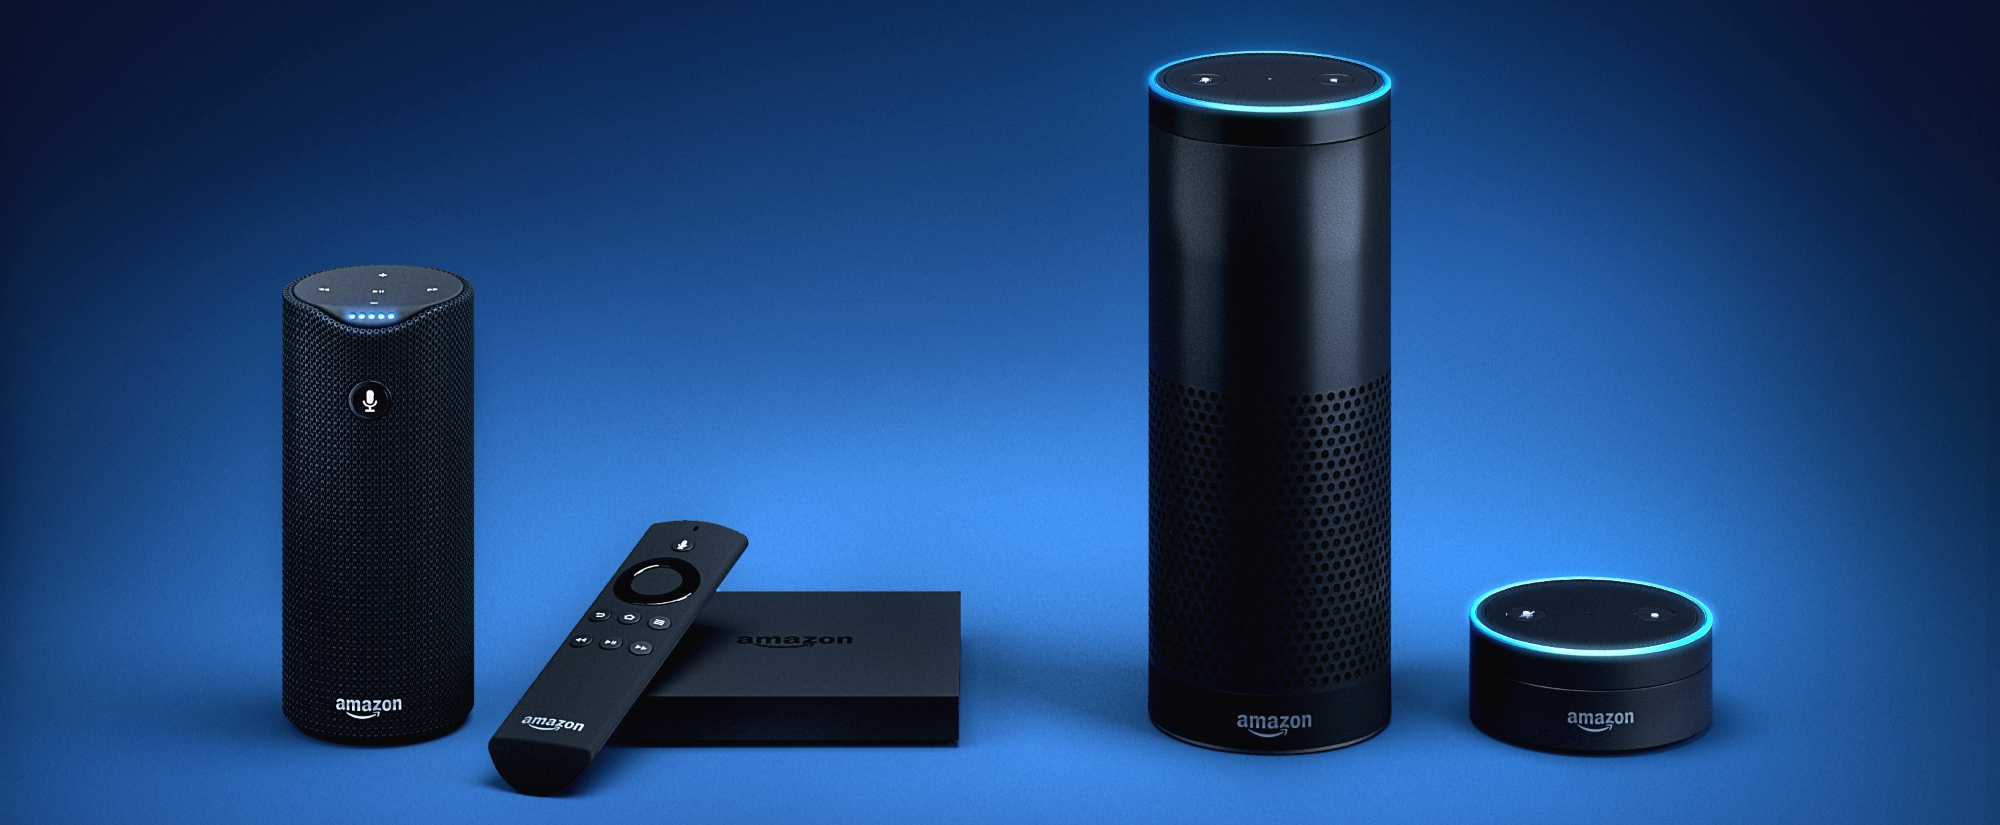 Amazon Extends Echo Range with Dot and Tap